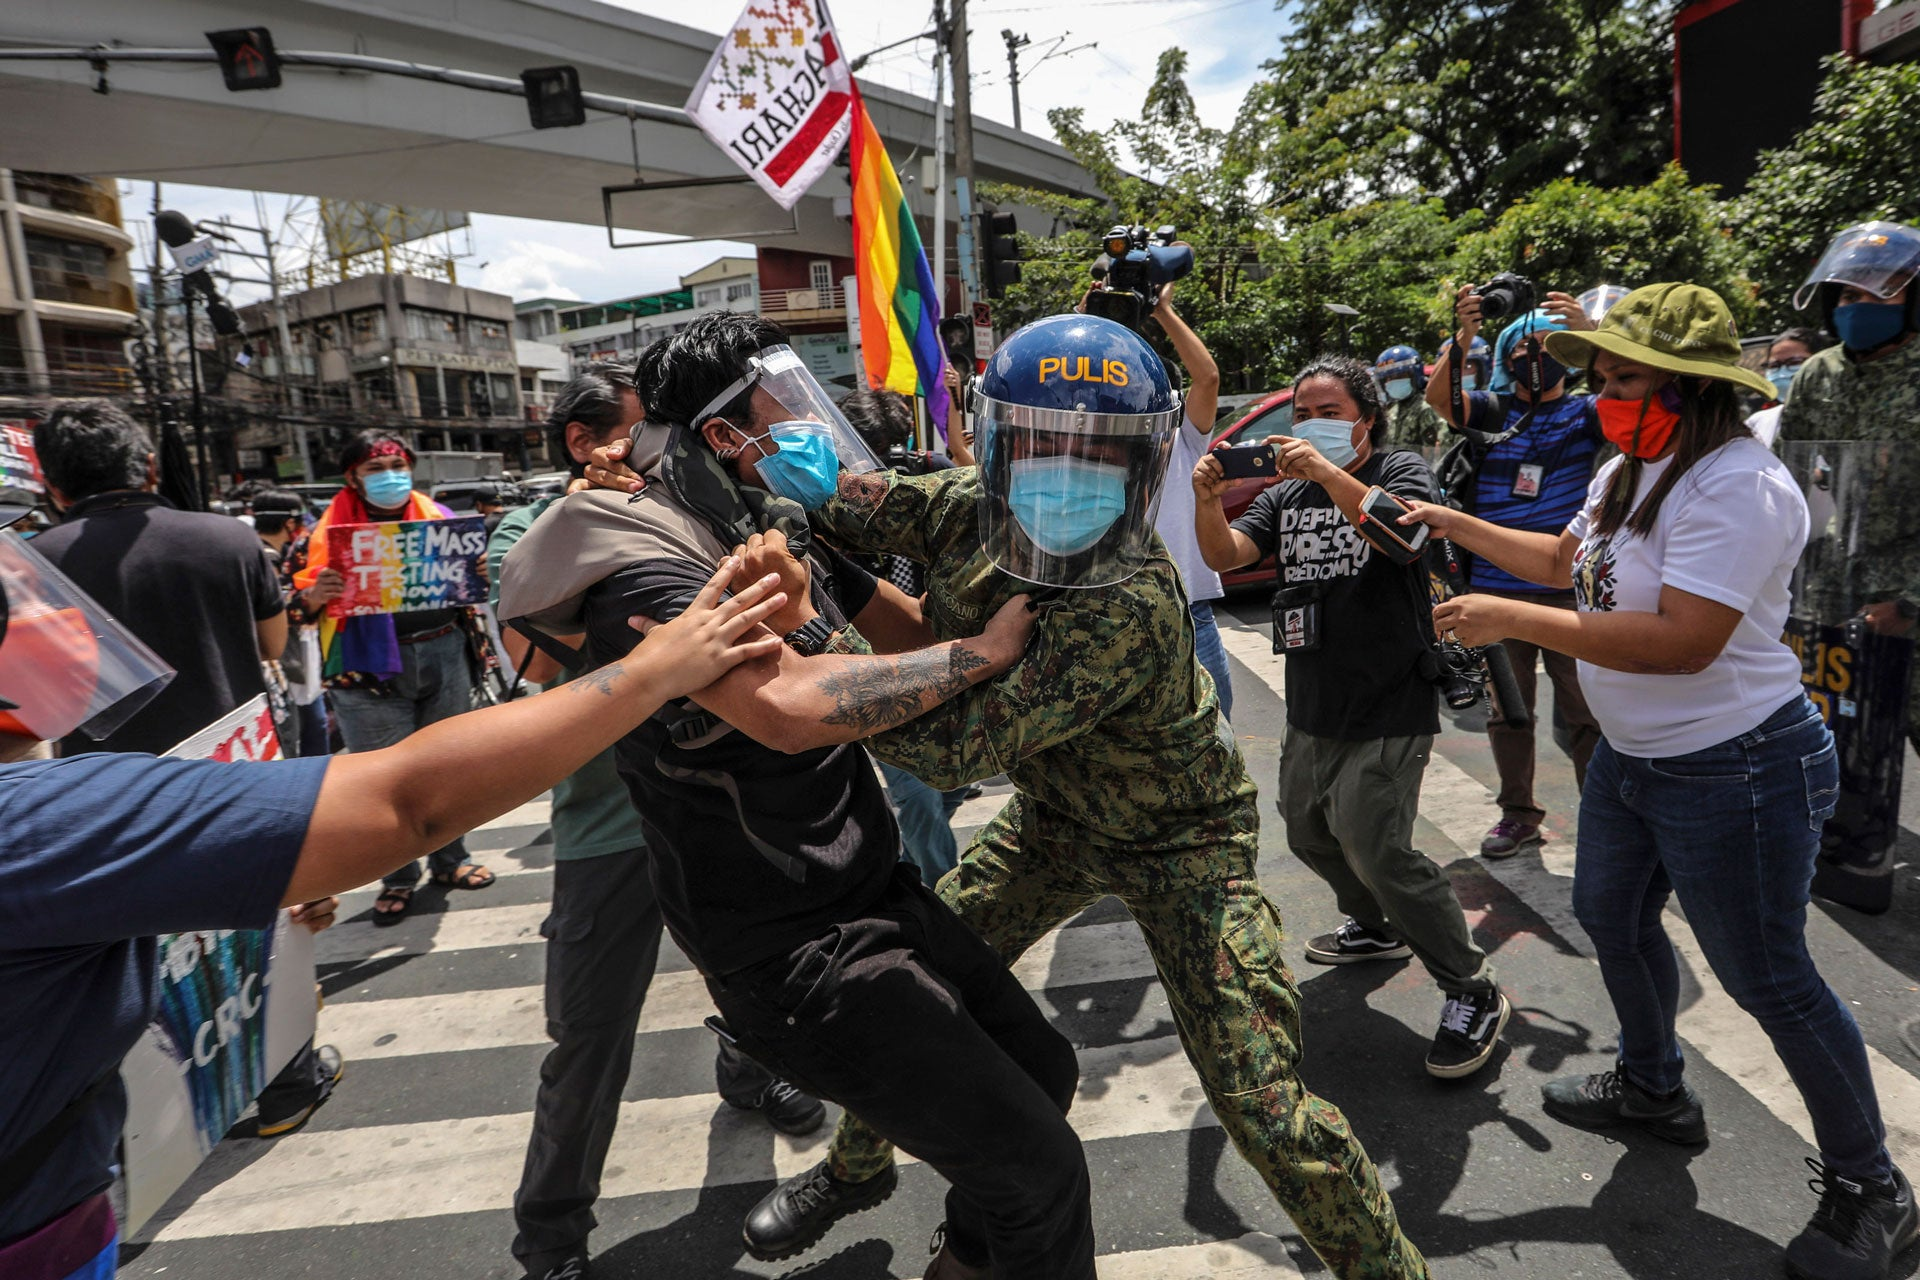 www.hrw.org: Philippines Police Crack Down on LGBT Protest